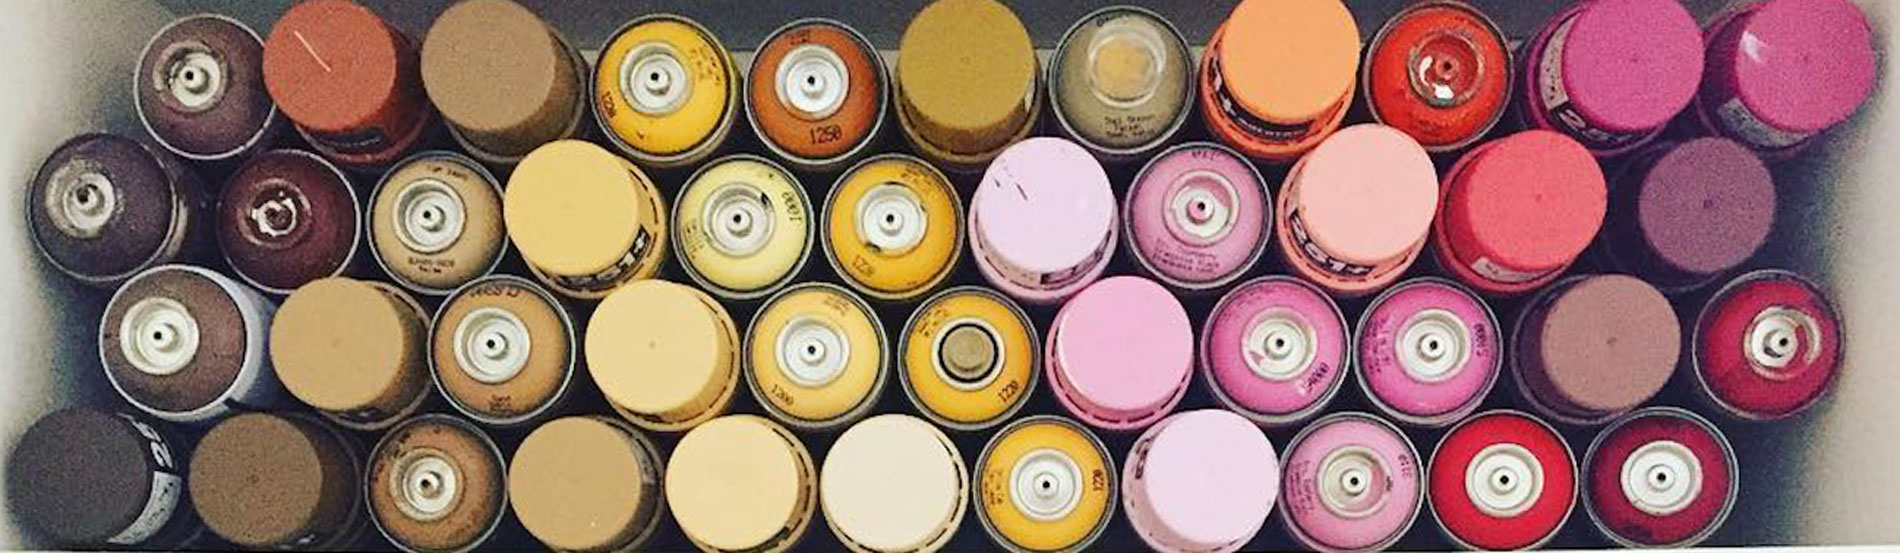 cans-lead-image.jpg